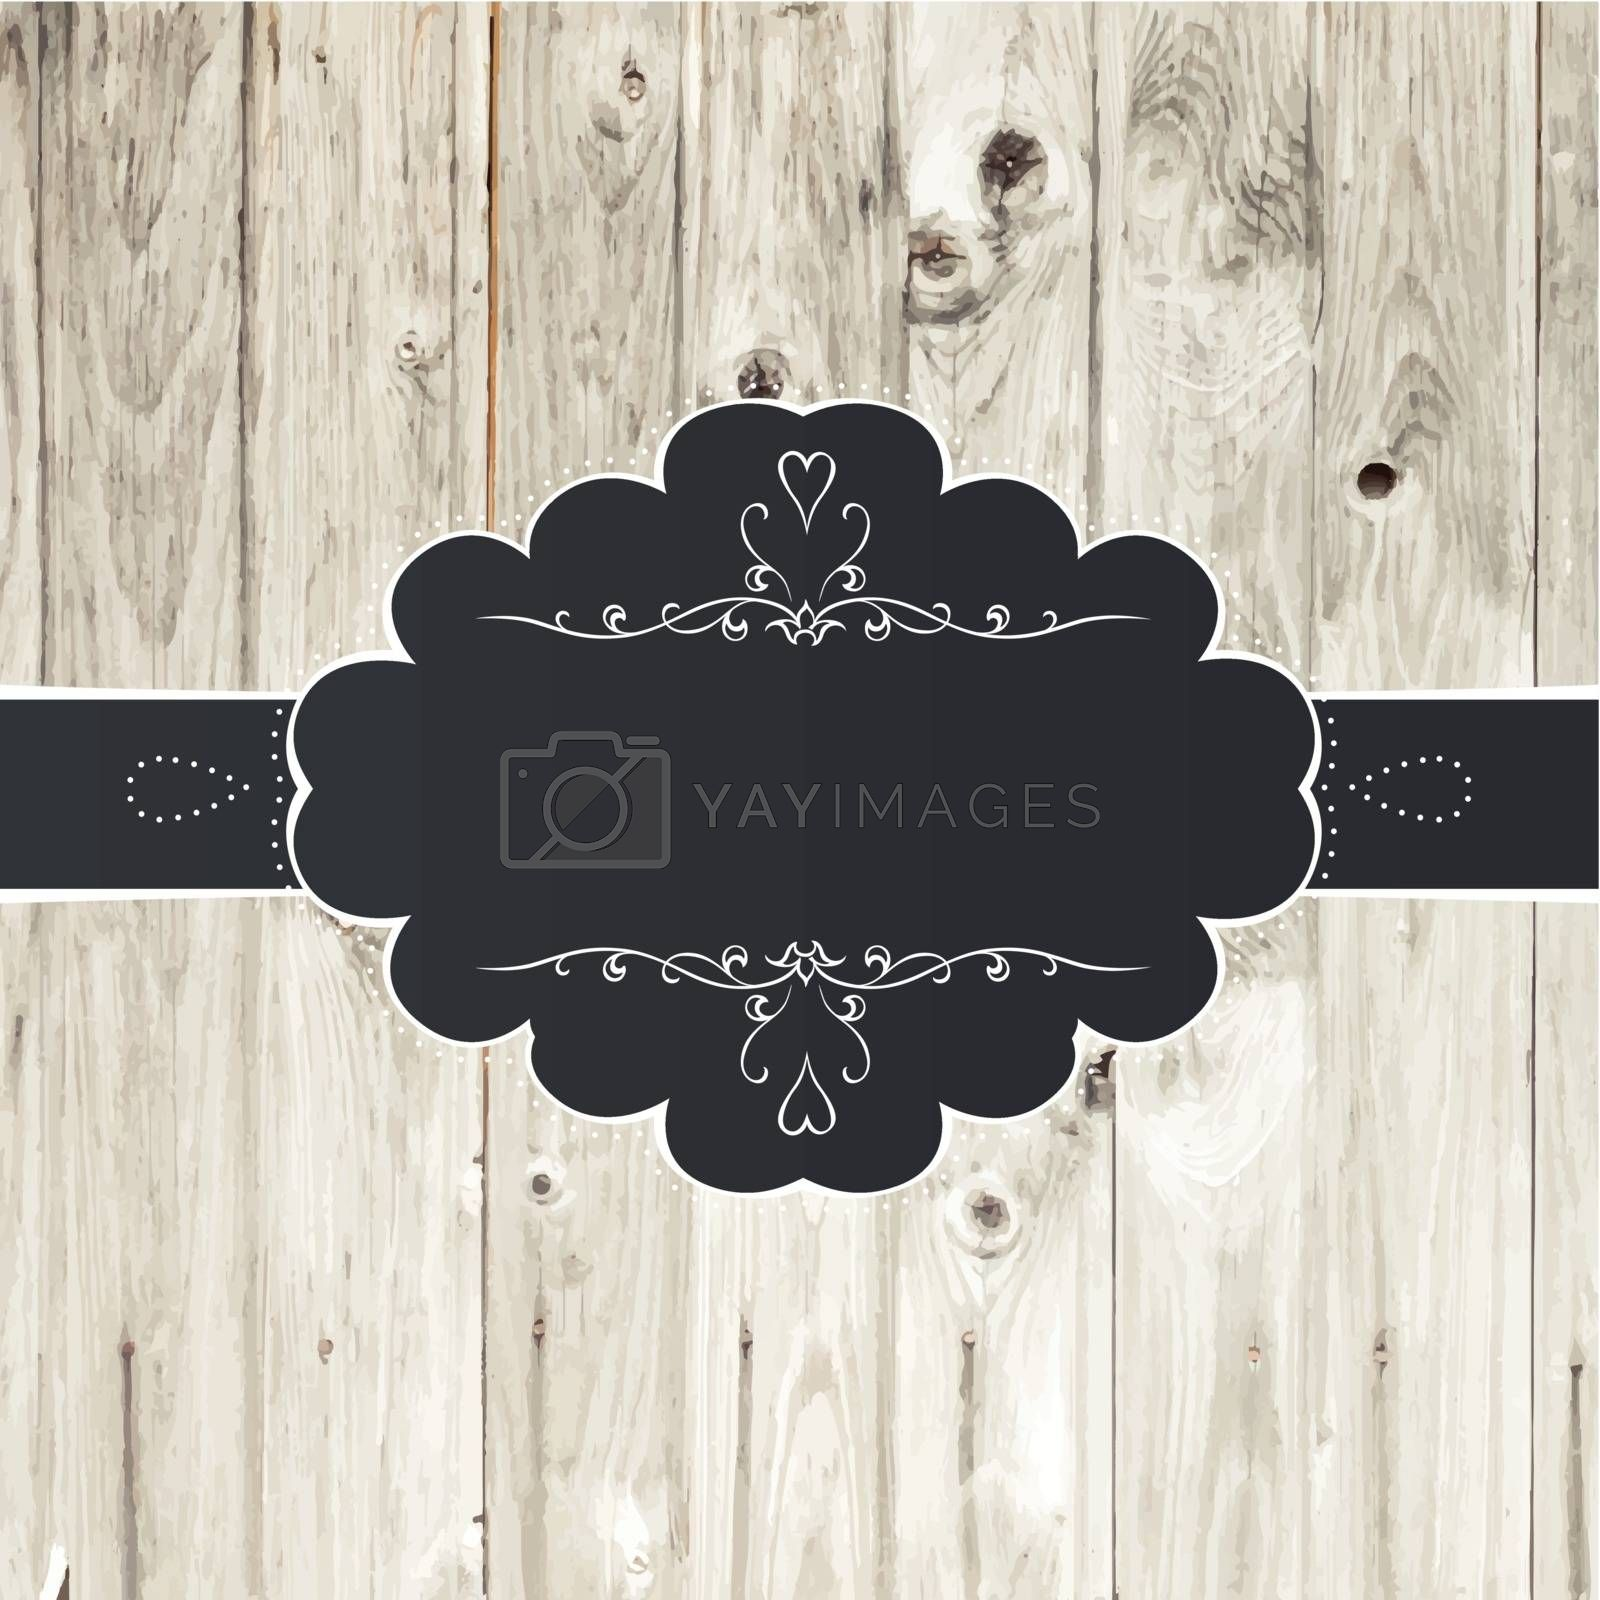 Royalty free image of Vintage Card Design with Label by pashabo